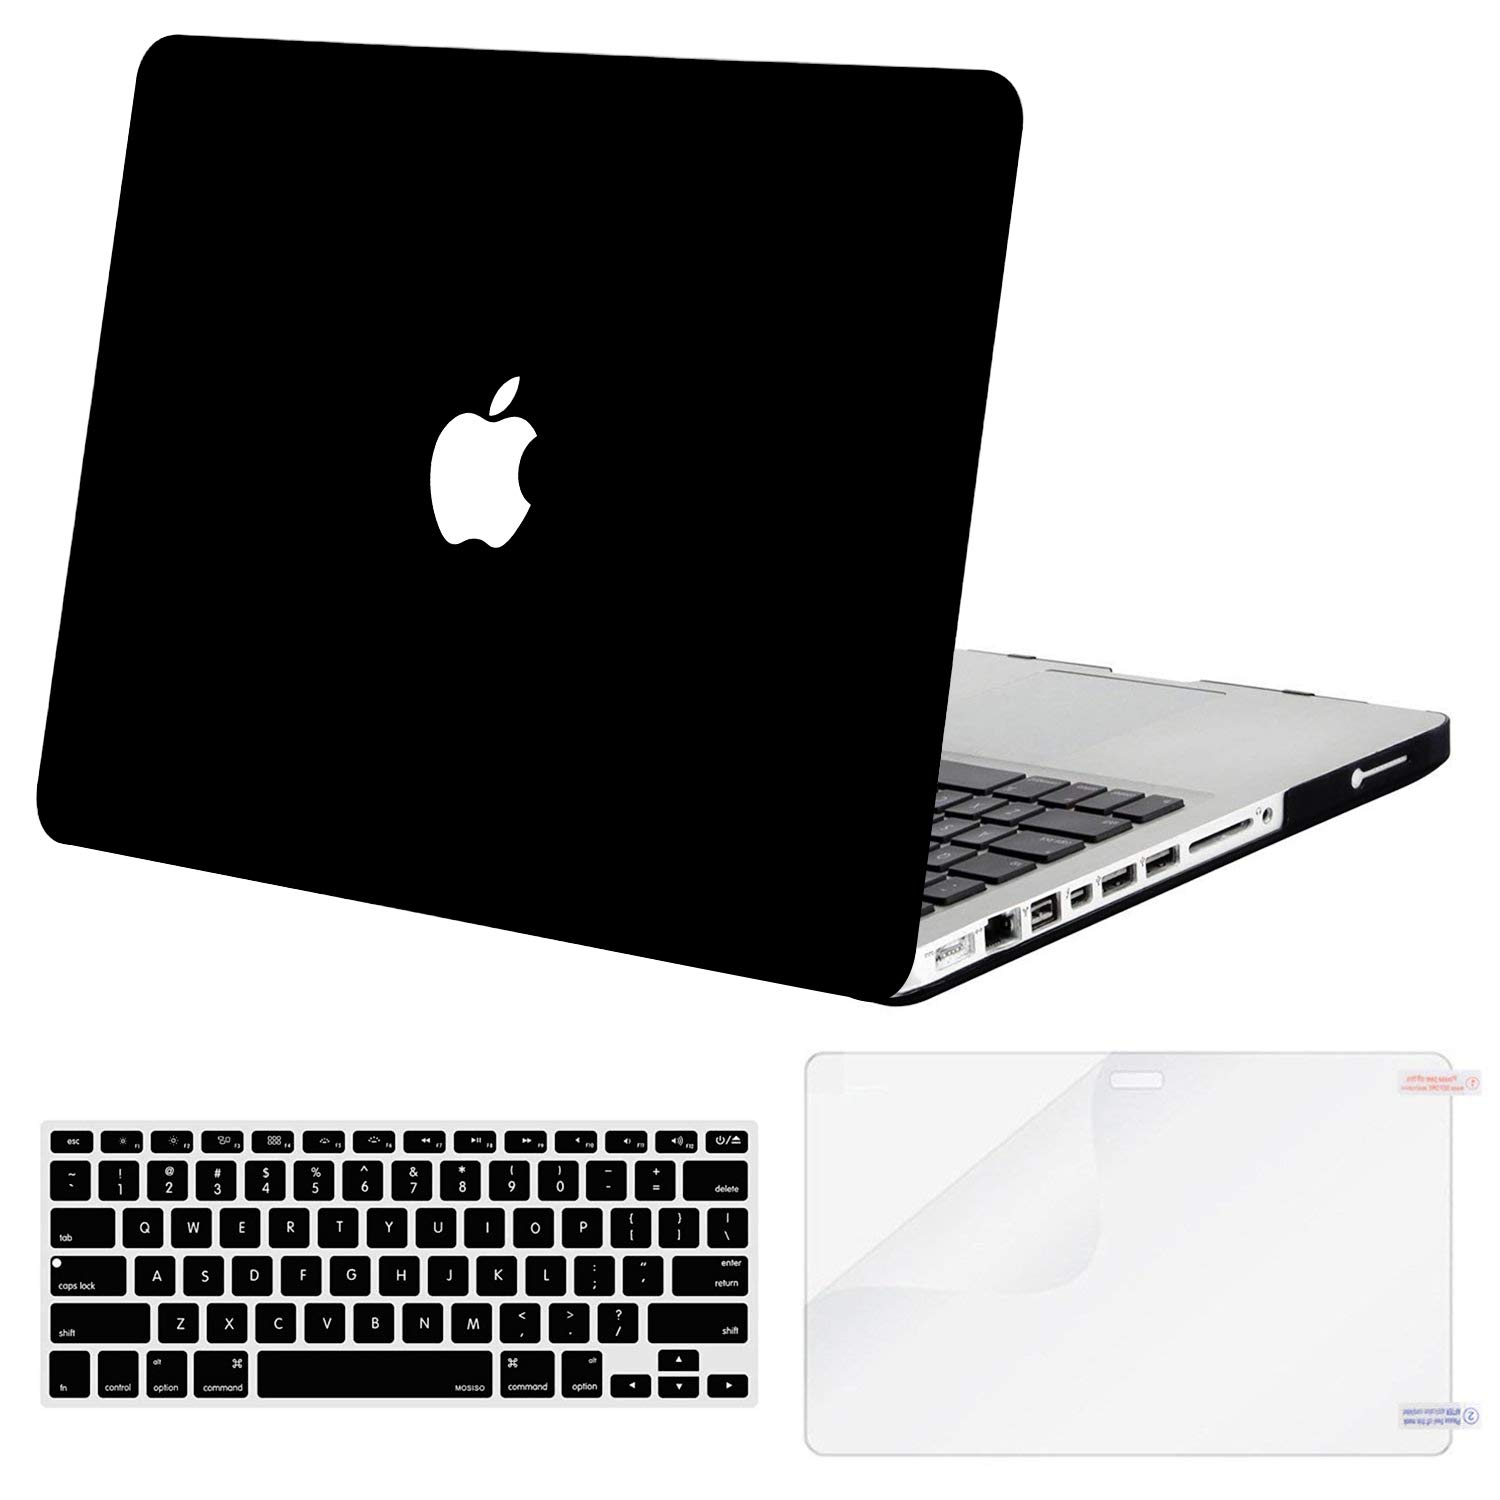 MOSISO Plastic Hard Shell Case & Keyboard Cover Skin & Screen Protector Only Compatible with Old Version MacBook Pro 15 inch (Model: A1286, with ...